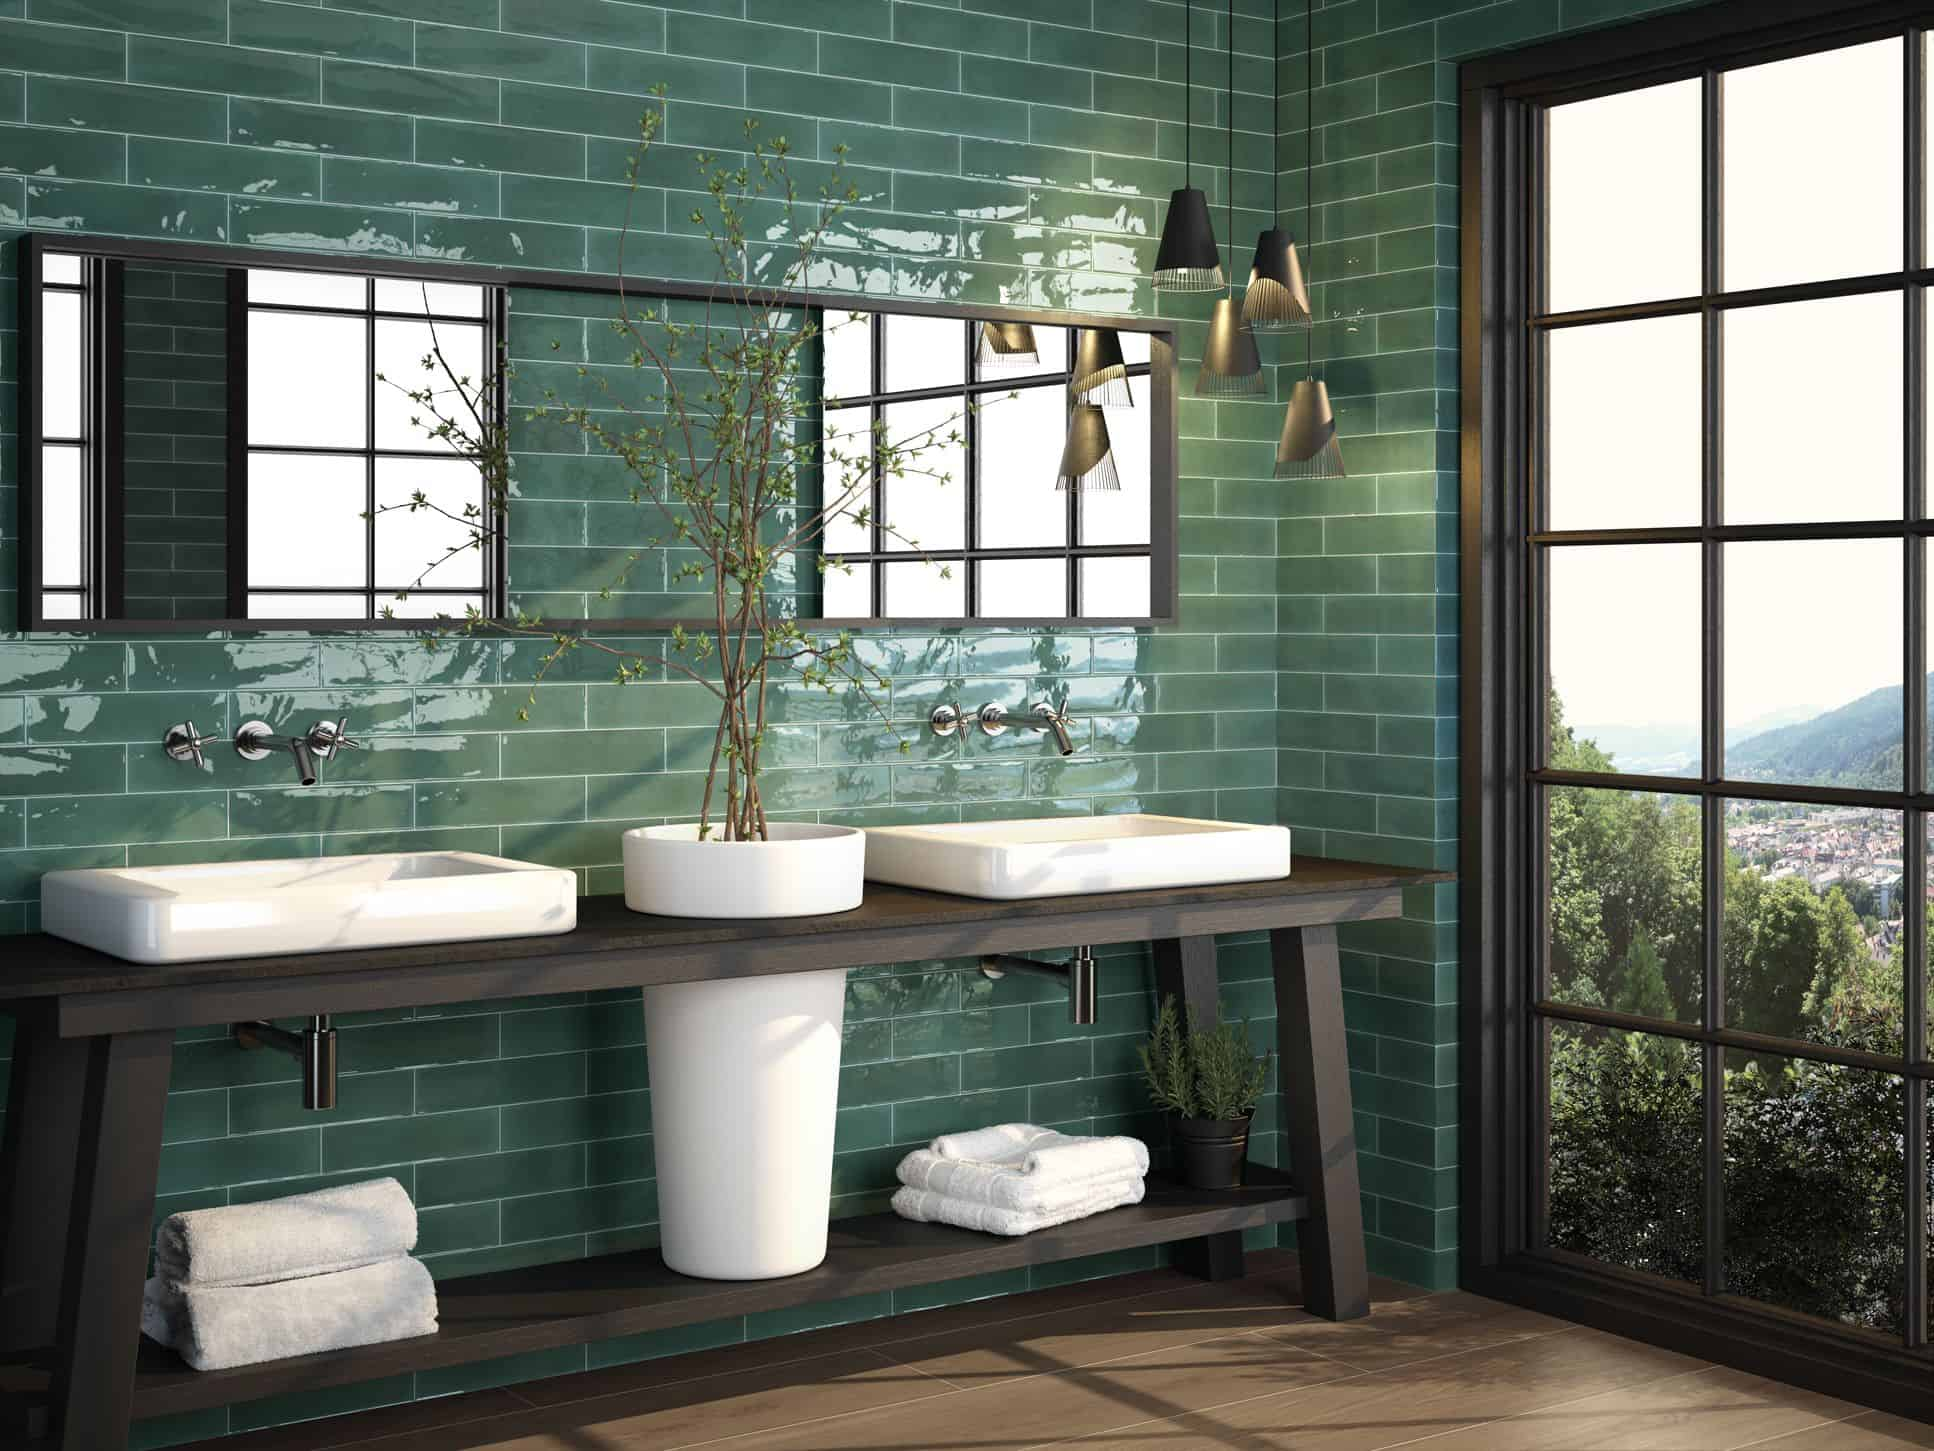 Metro green Opal subway tile 75x300mm Opal green by Decobella Tiles - South Africa irregular edge to represent a handmade look tile. Ideal for splash-backs, wall features or focal points.